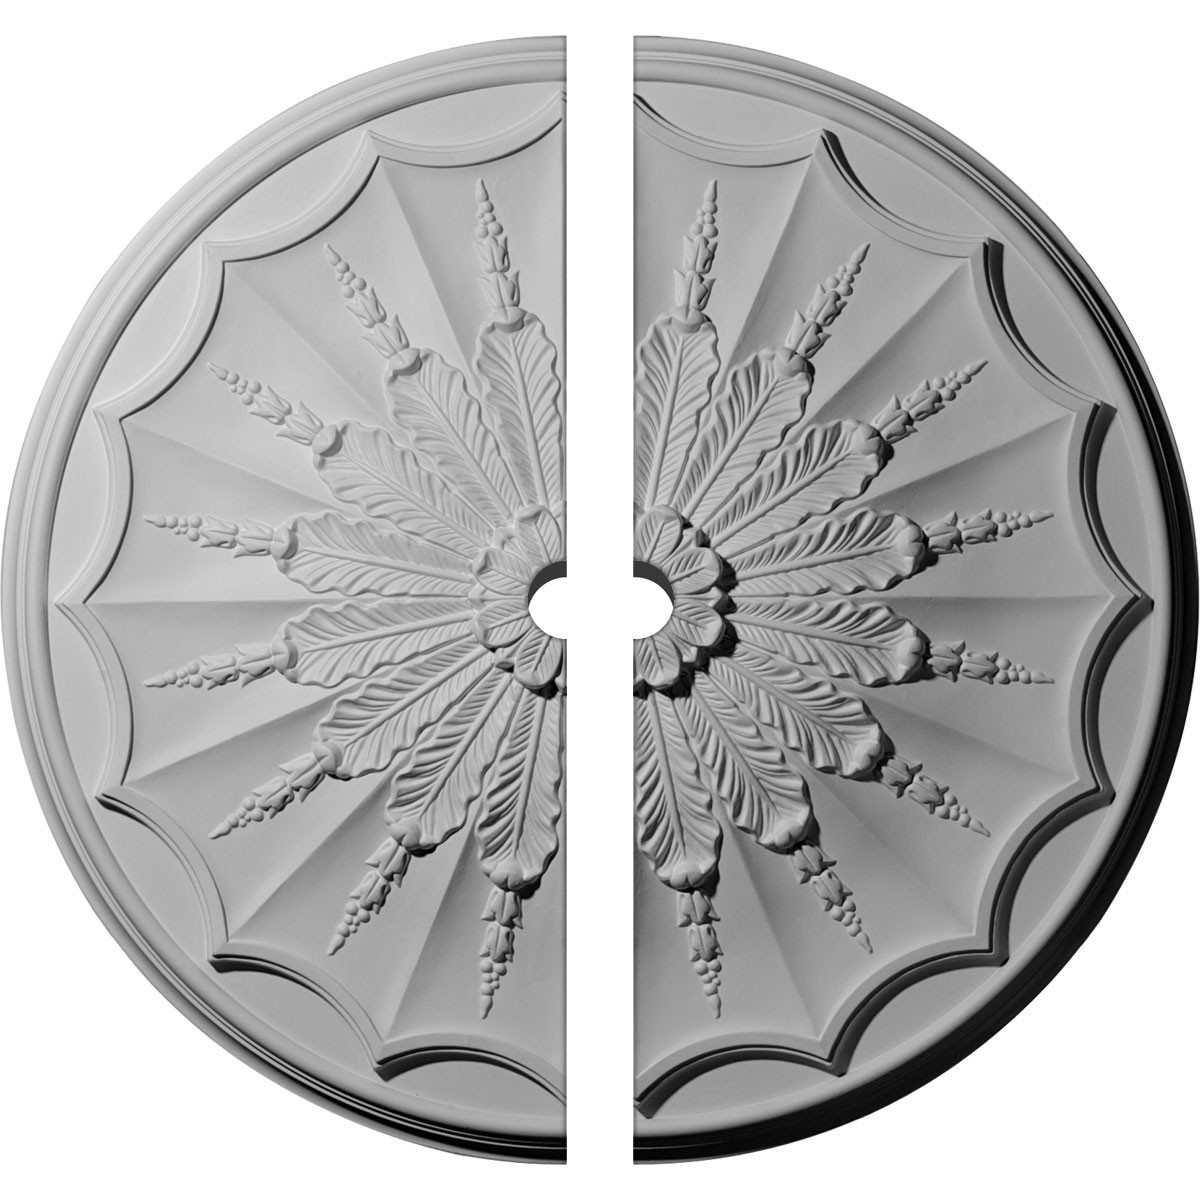 """EM-CM27AR2-02000 - 27 1/8""""OD x 2""""ID x 2 5/8""""P Artis Ceiling Medallion, Two Piece (Fits Canopies up to 2"""")"""